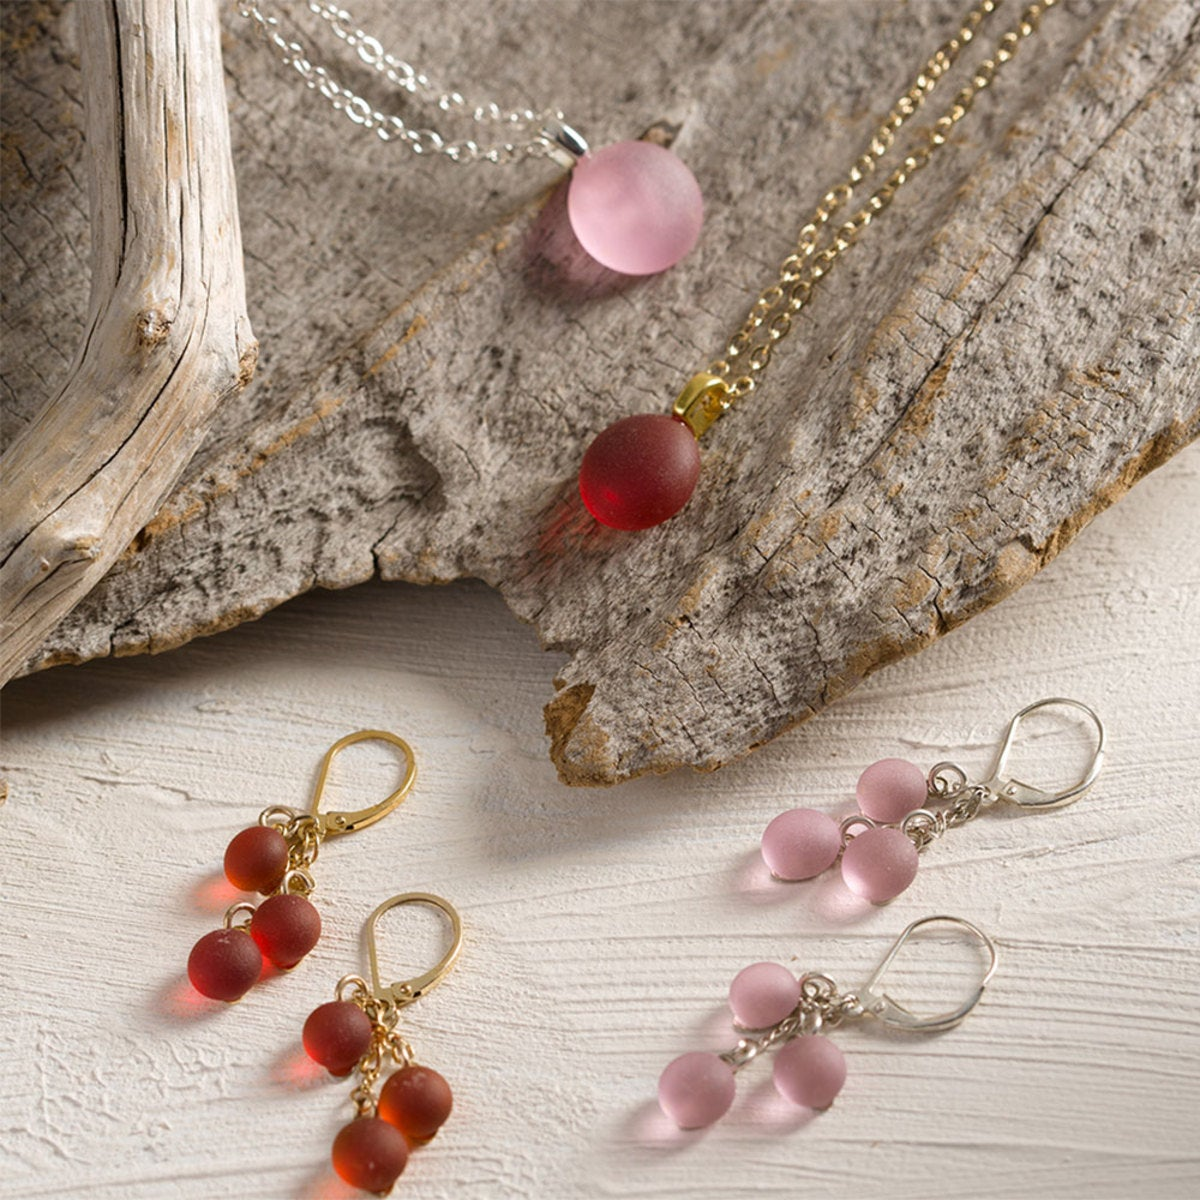 Pink & Red Sea Glass Jewelry